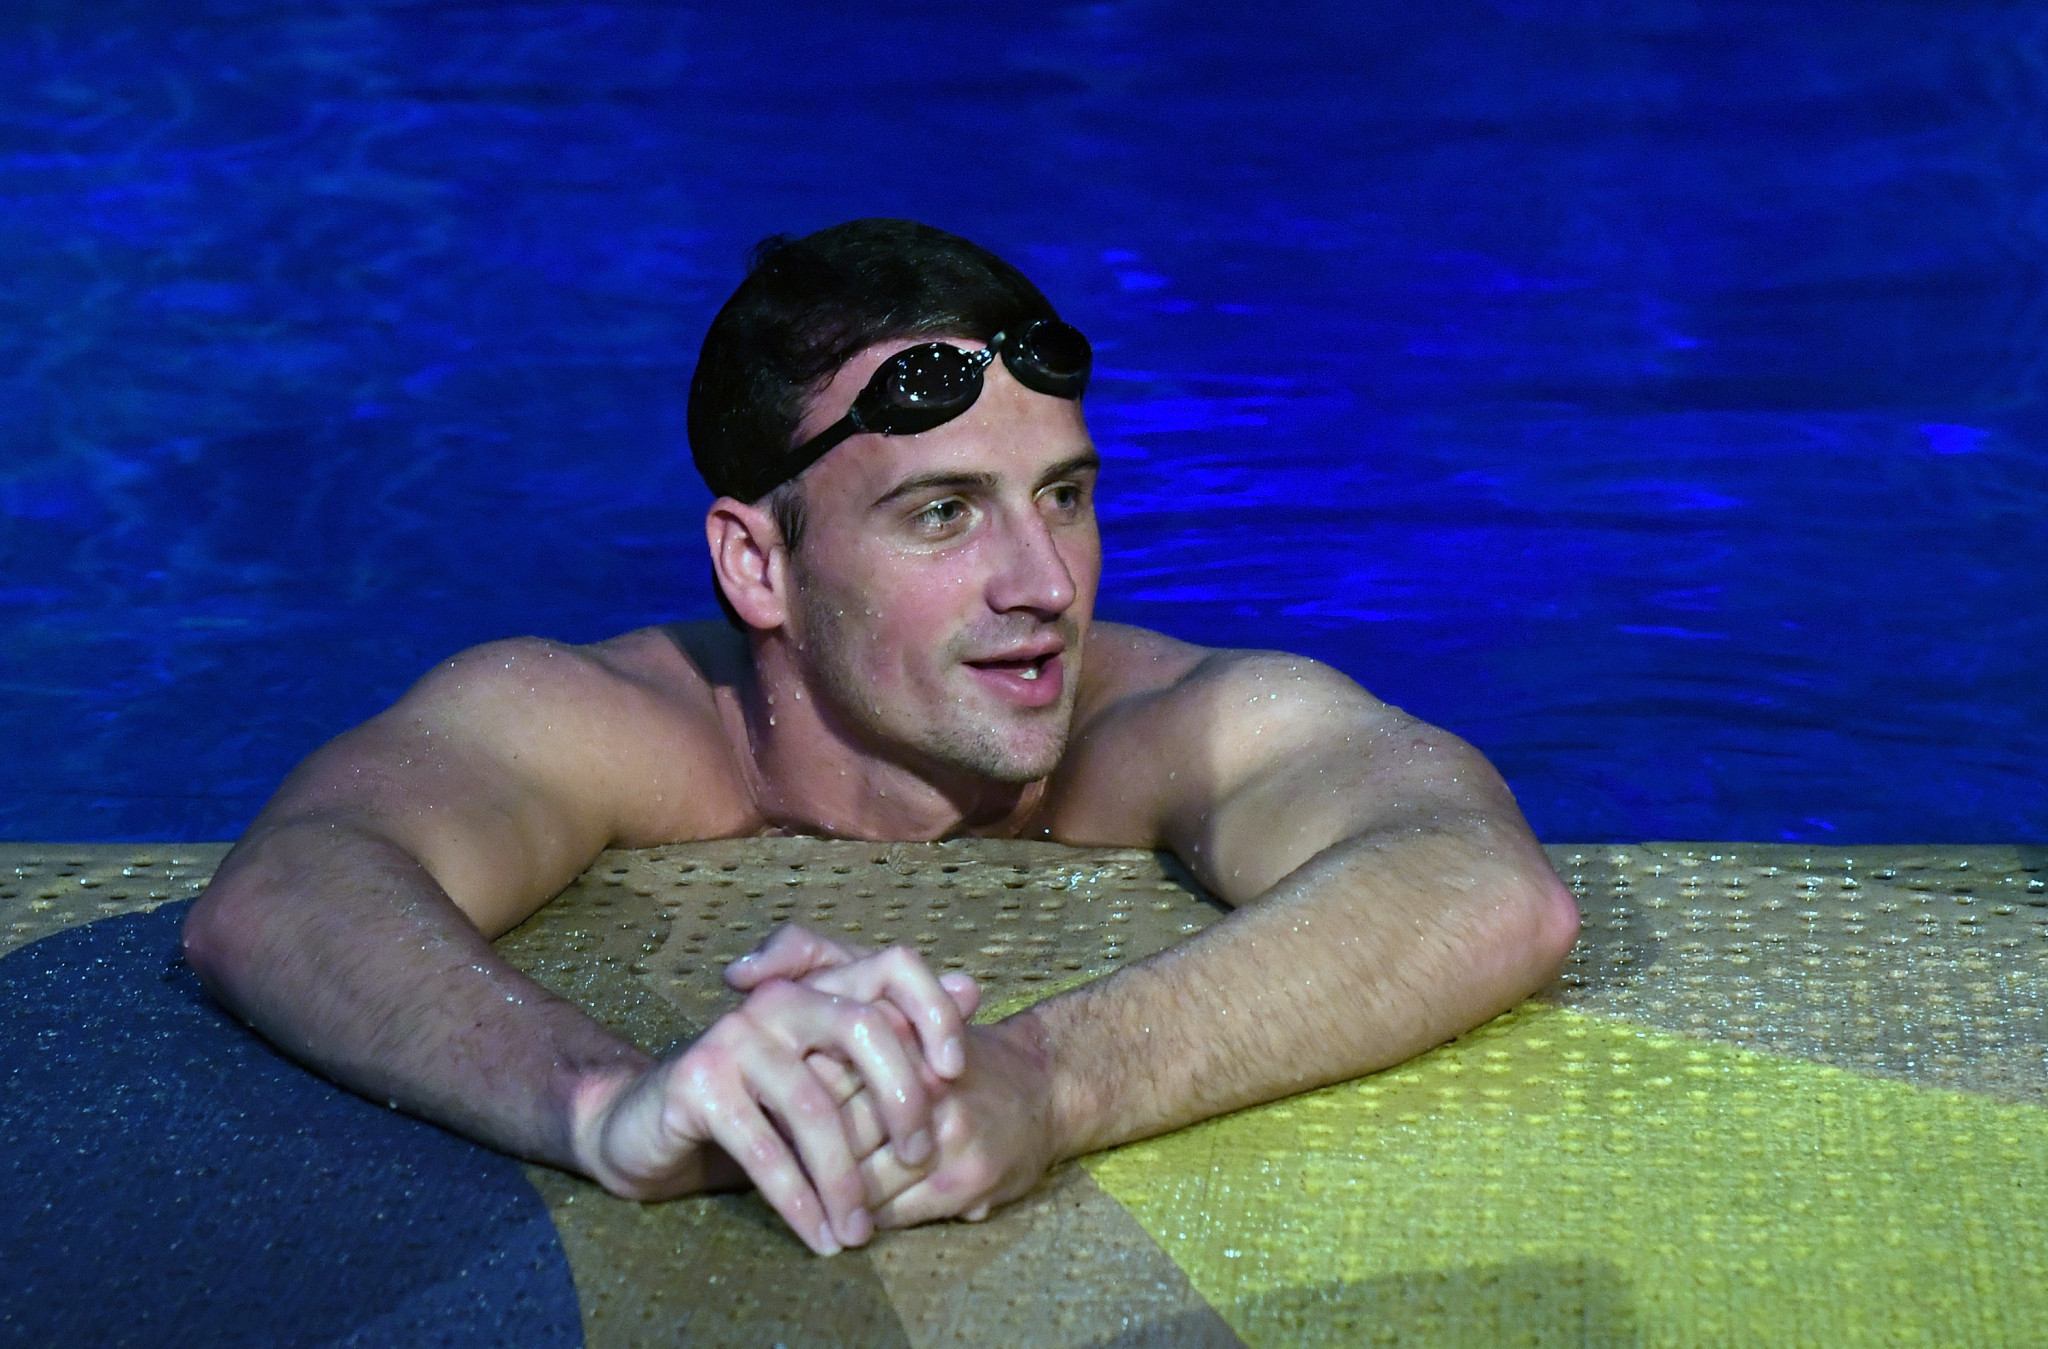 A case against Ryan Lochte may be reopened ©Getty Images